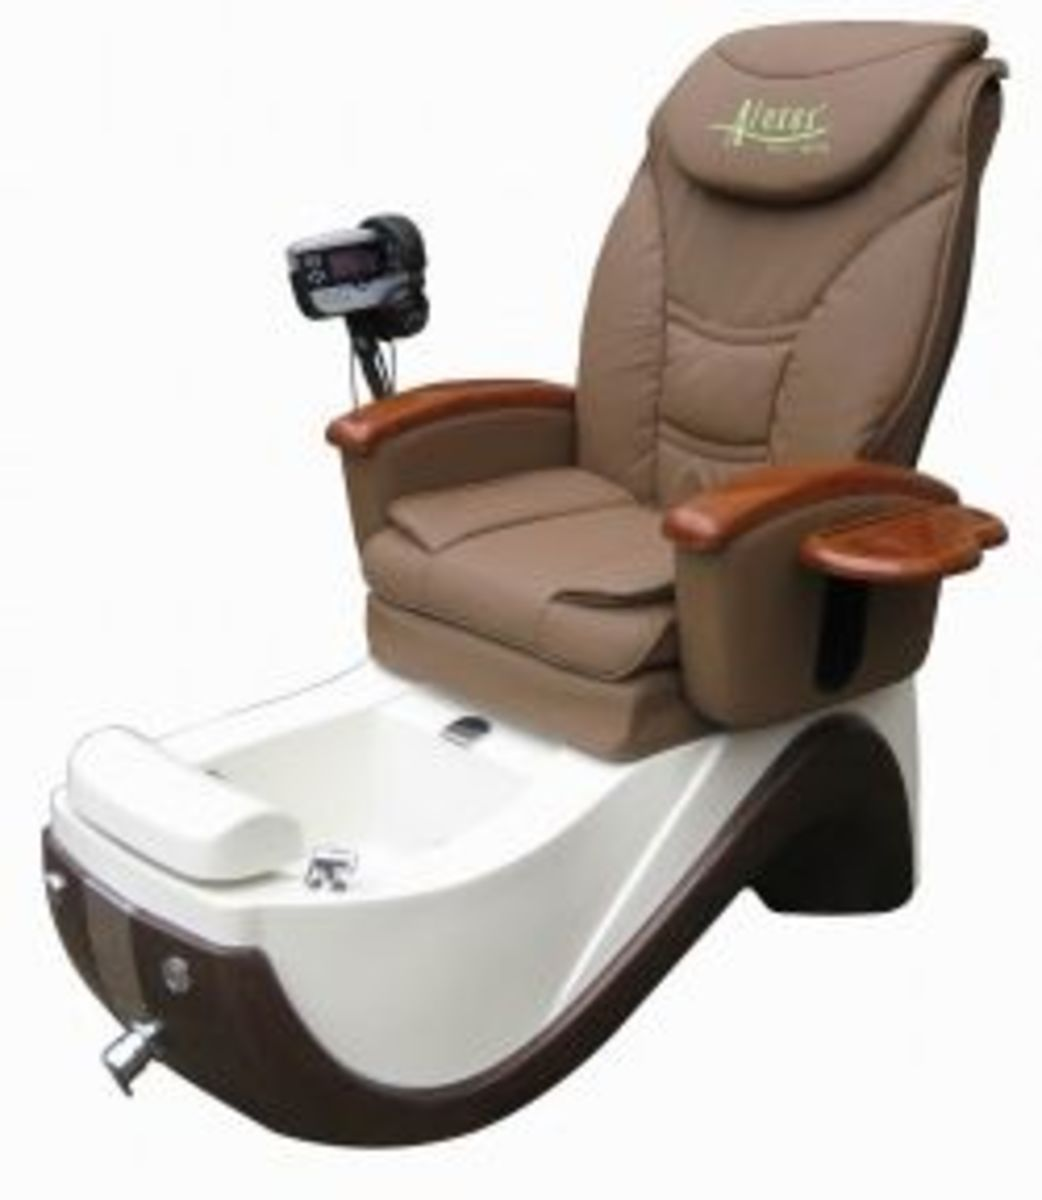 Used pedicure spa equipment and supplies for sale stools chairs stations hubpages - Used salon furniture for sale ...